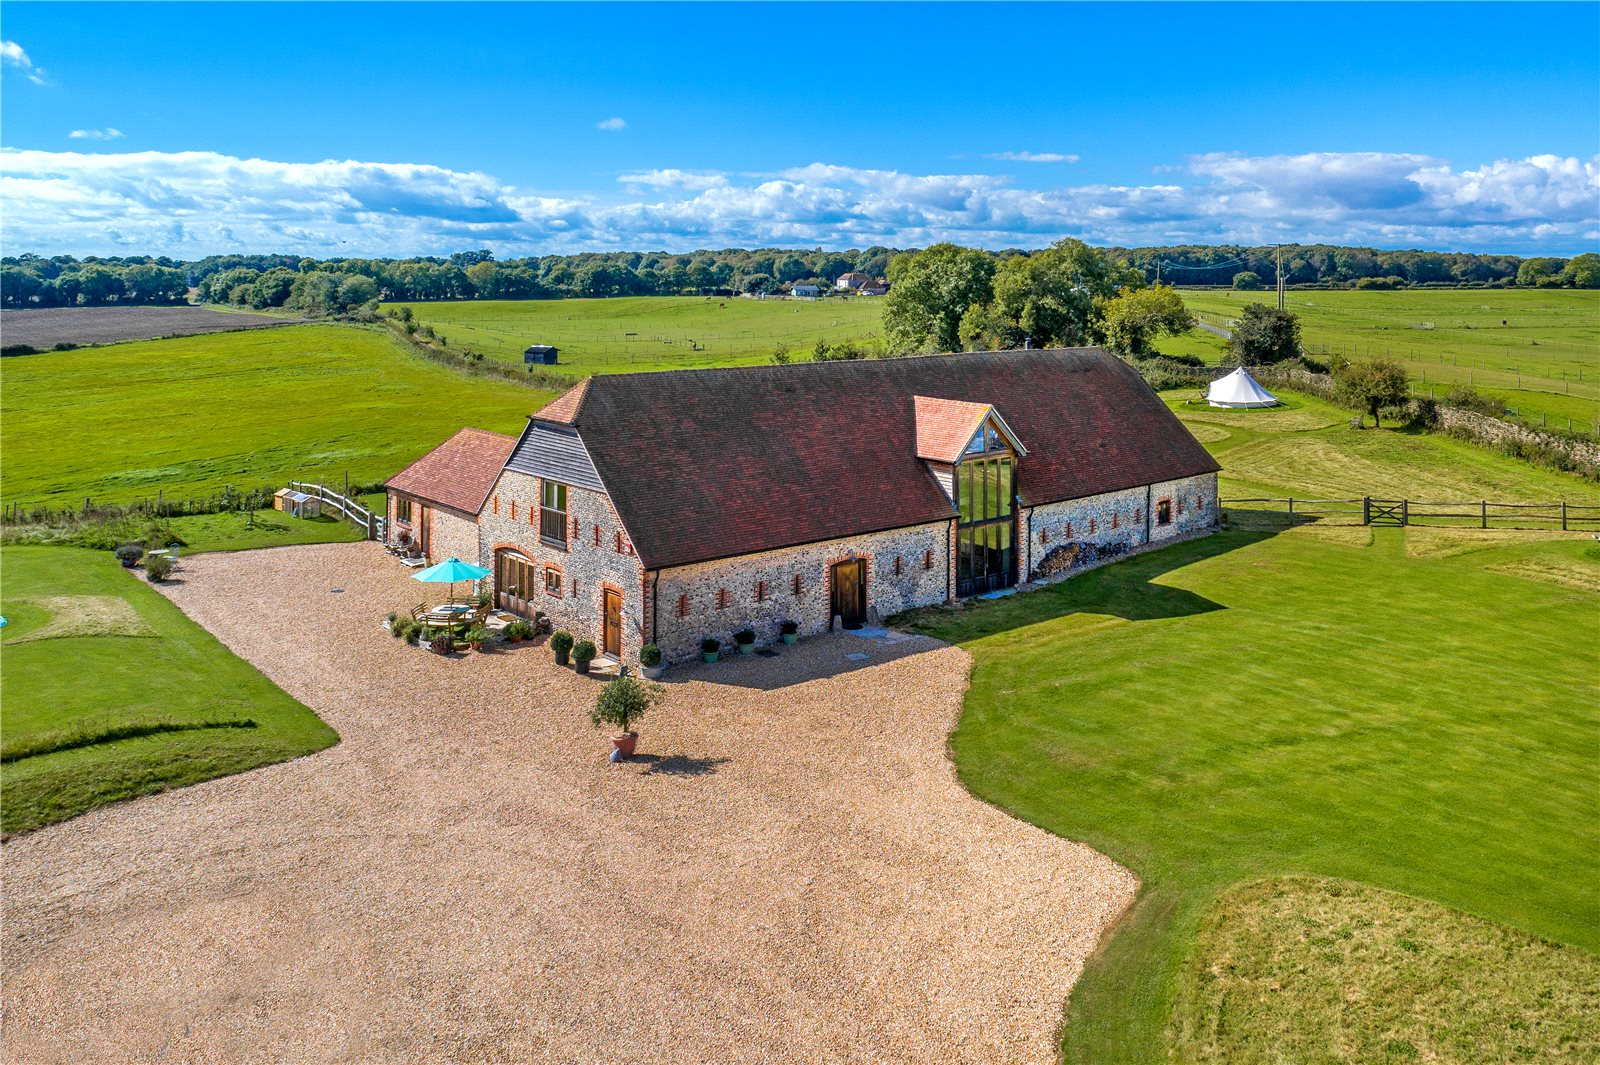 Maison unifamiliale pour l Vente à West Lavant, Chichester, West Sussex, PO18 Chichester, Angleterre